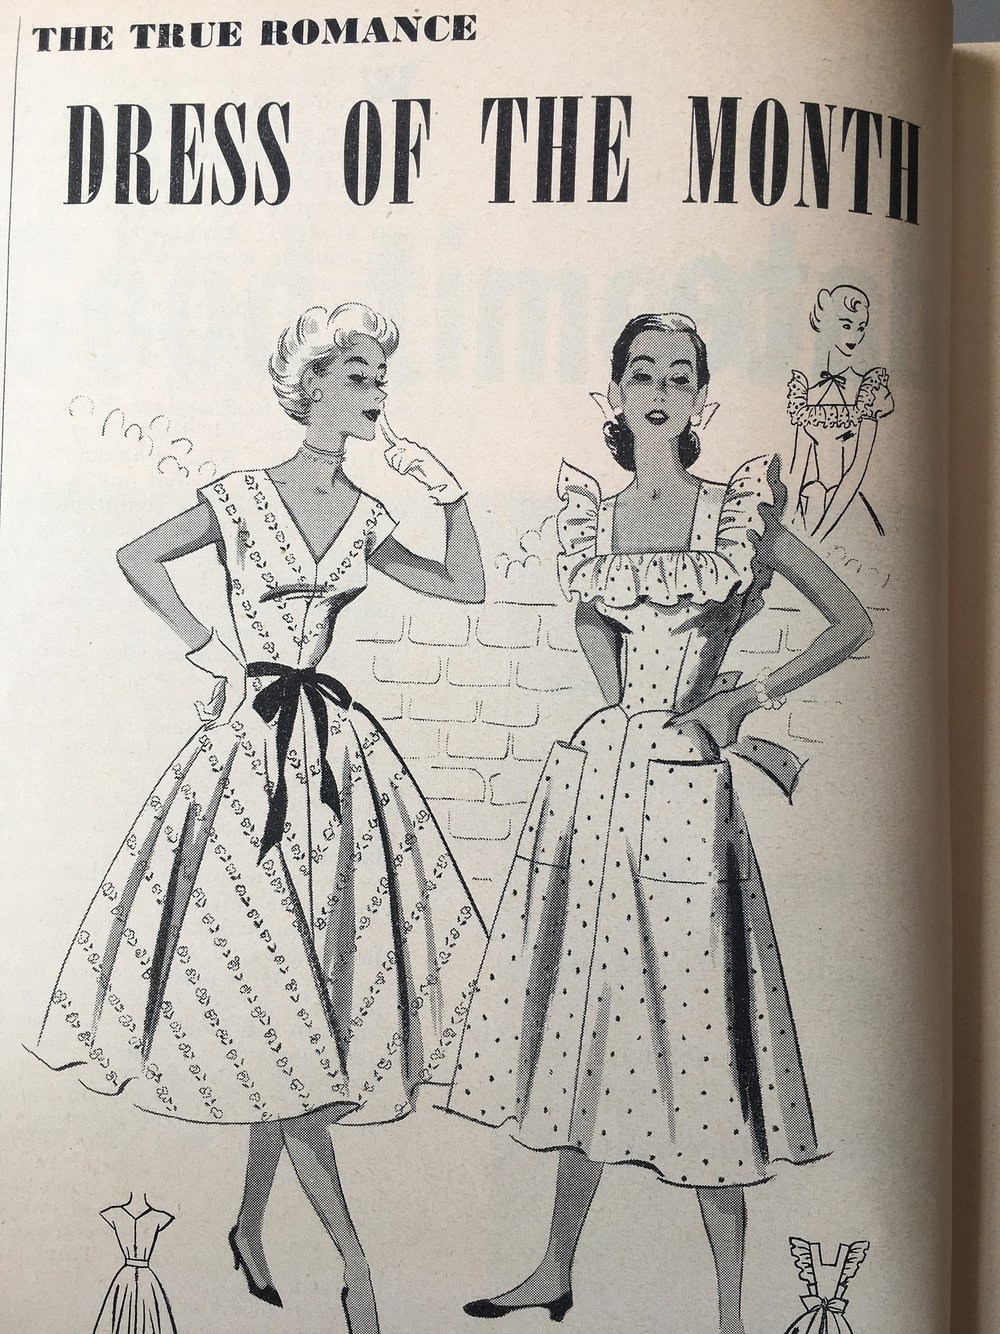 The True Romance Dress of the Month. True Romance. June 1952.